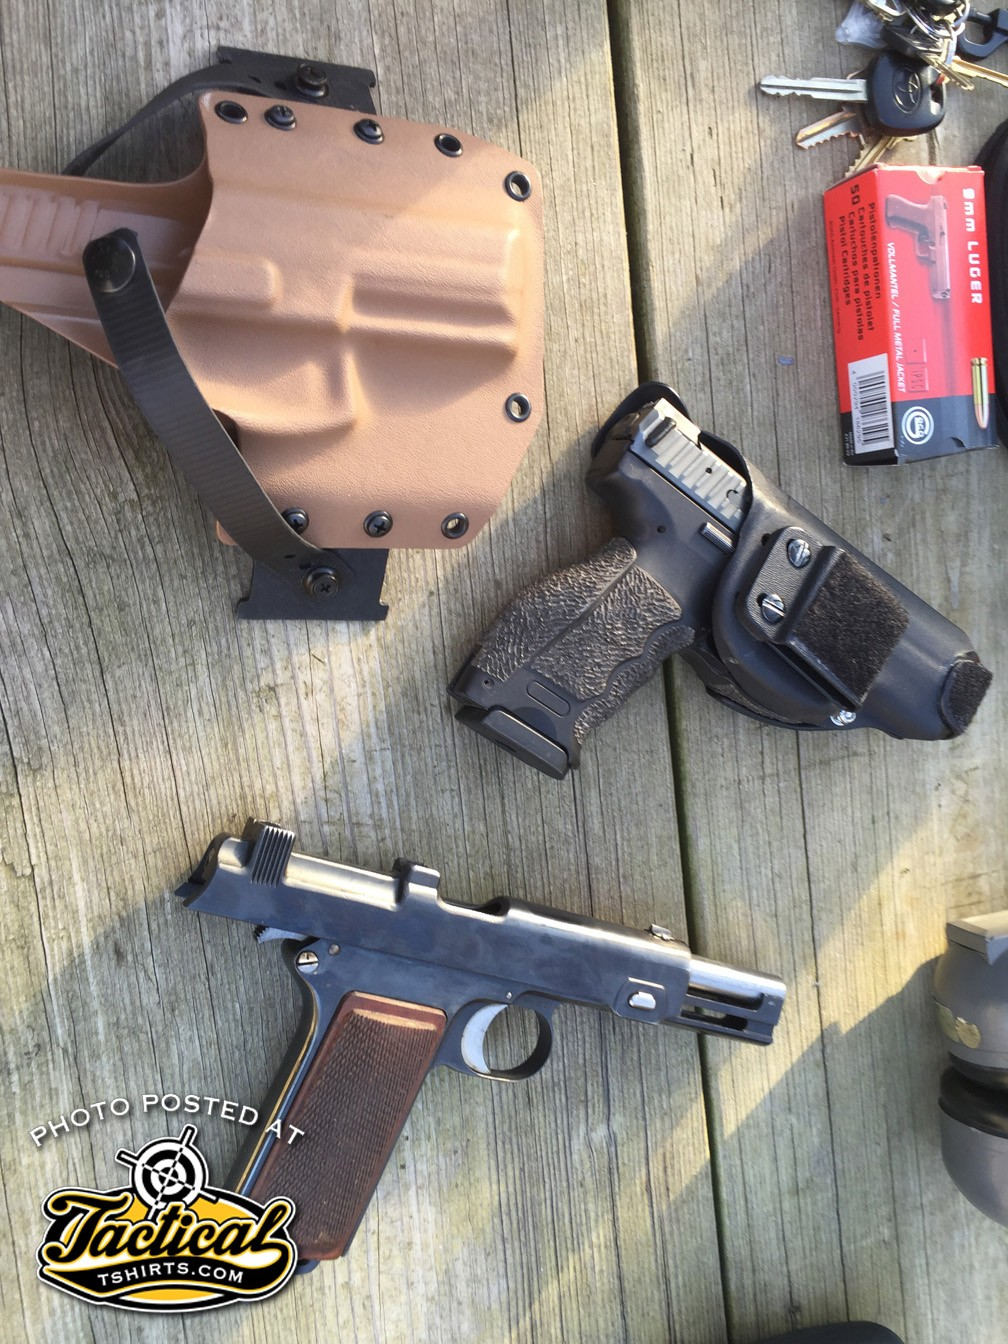 1912 Steyr-Hahn P08 Initial Testing and Video – John1911 com